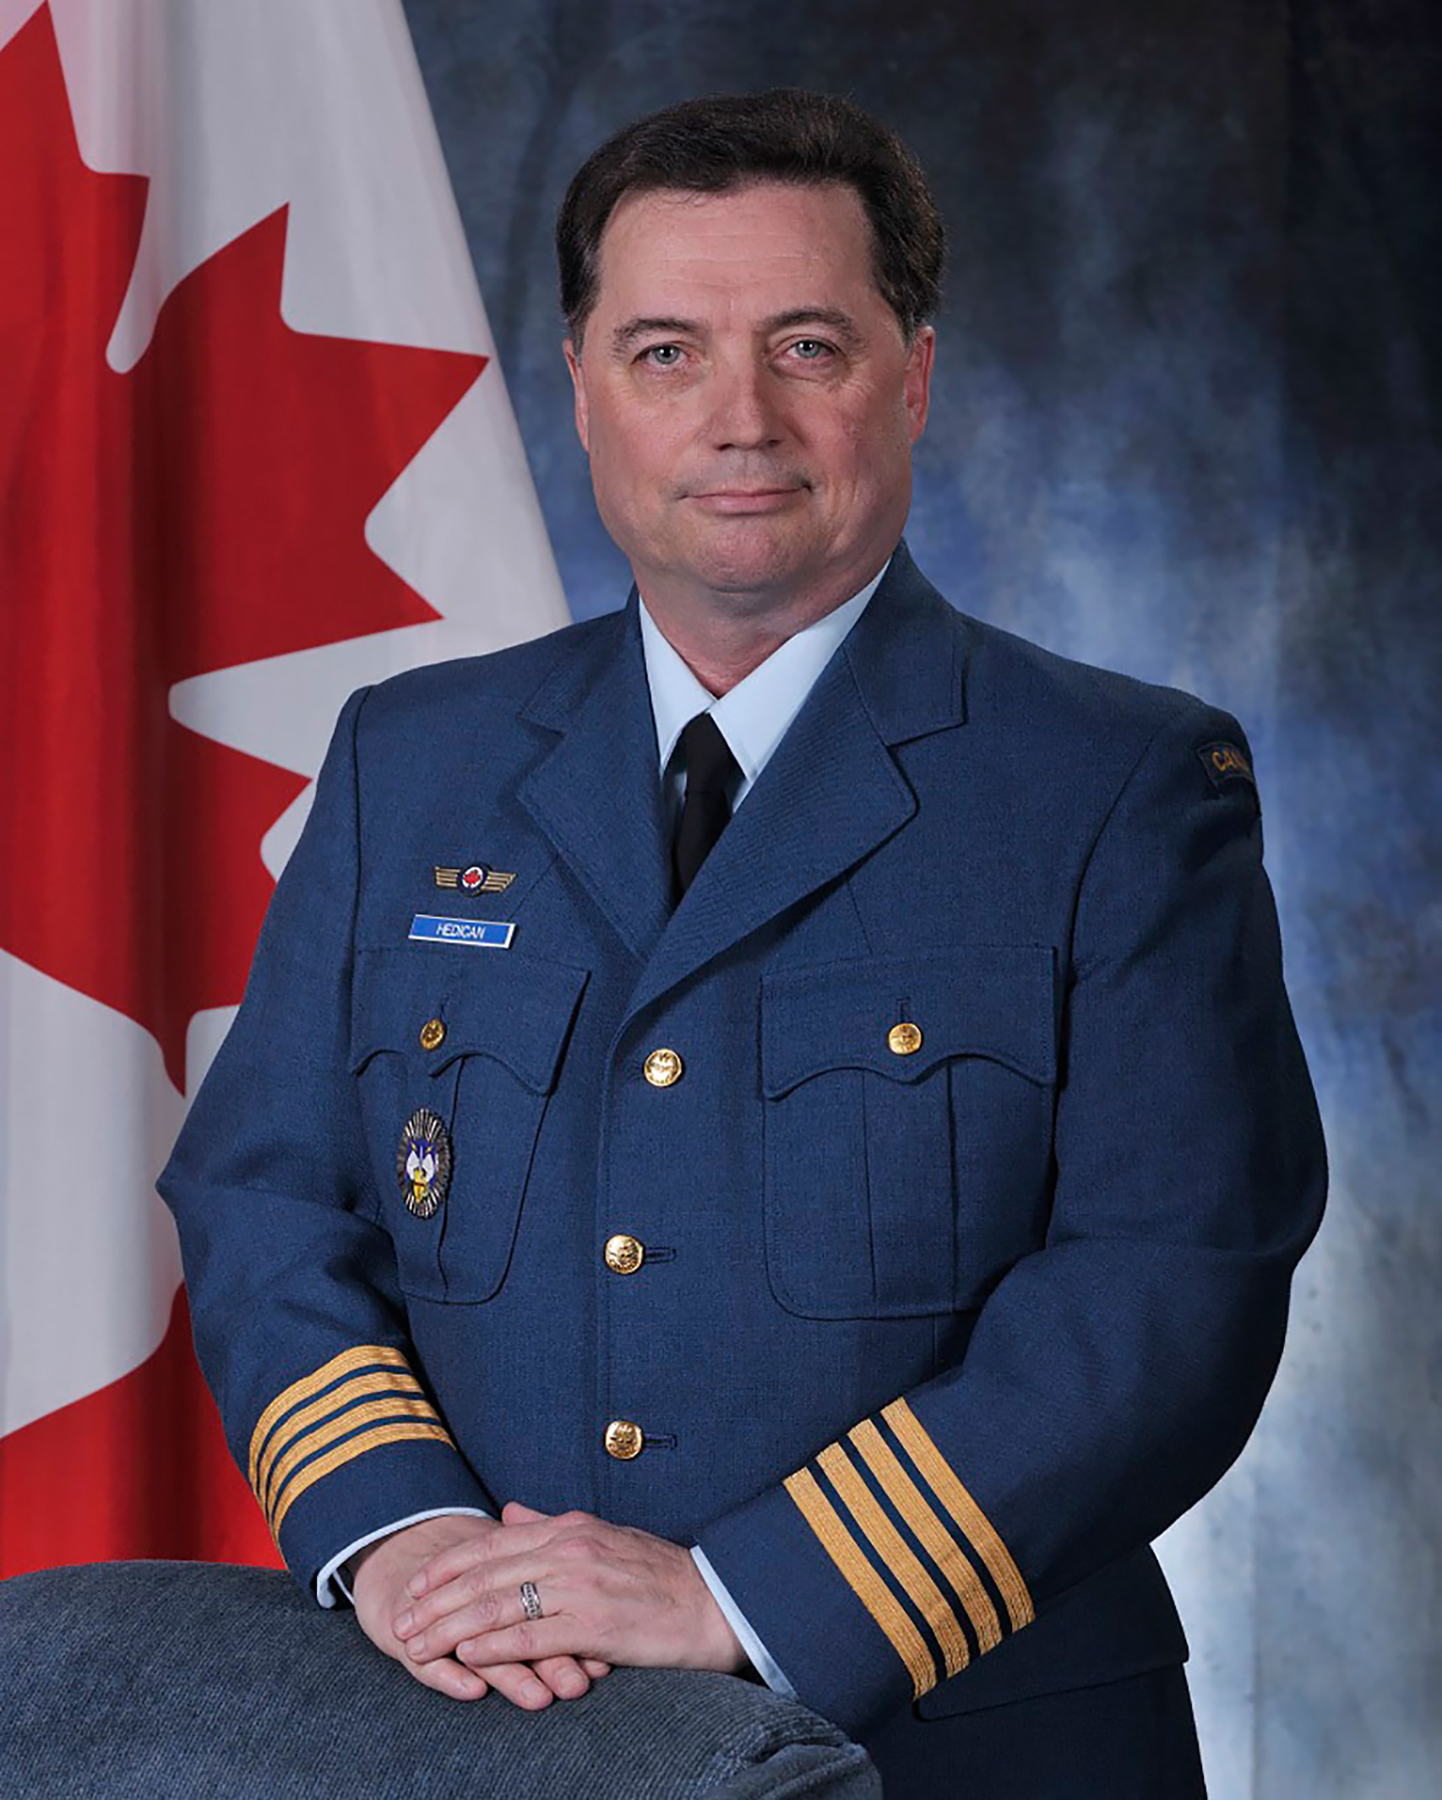 A man in a blue uniform stands beside a Canadian flag with his hands resting on the back of a chair, and looks at the camera.